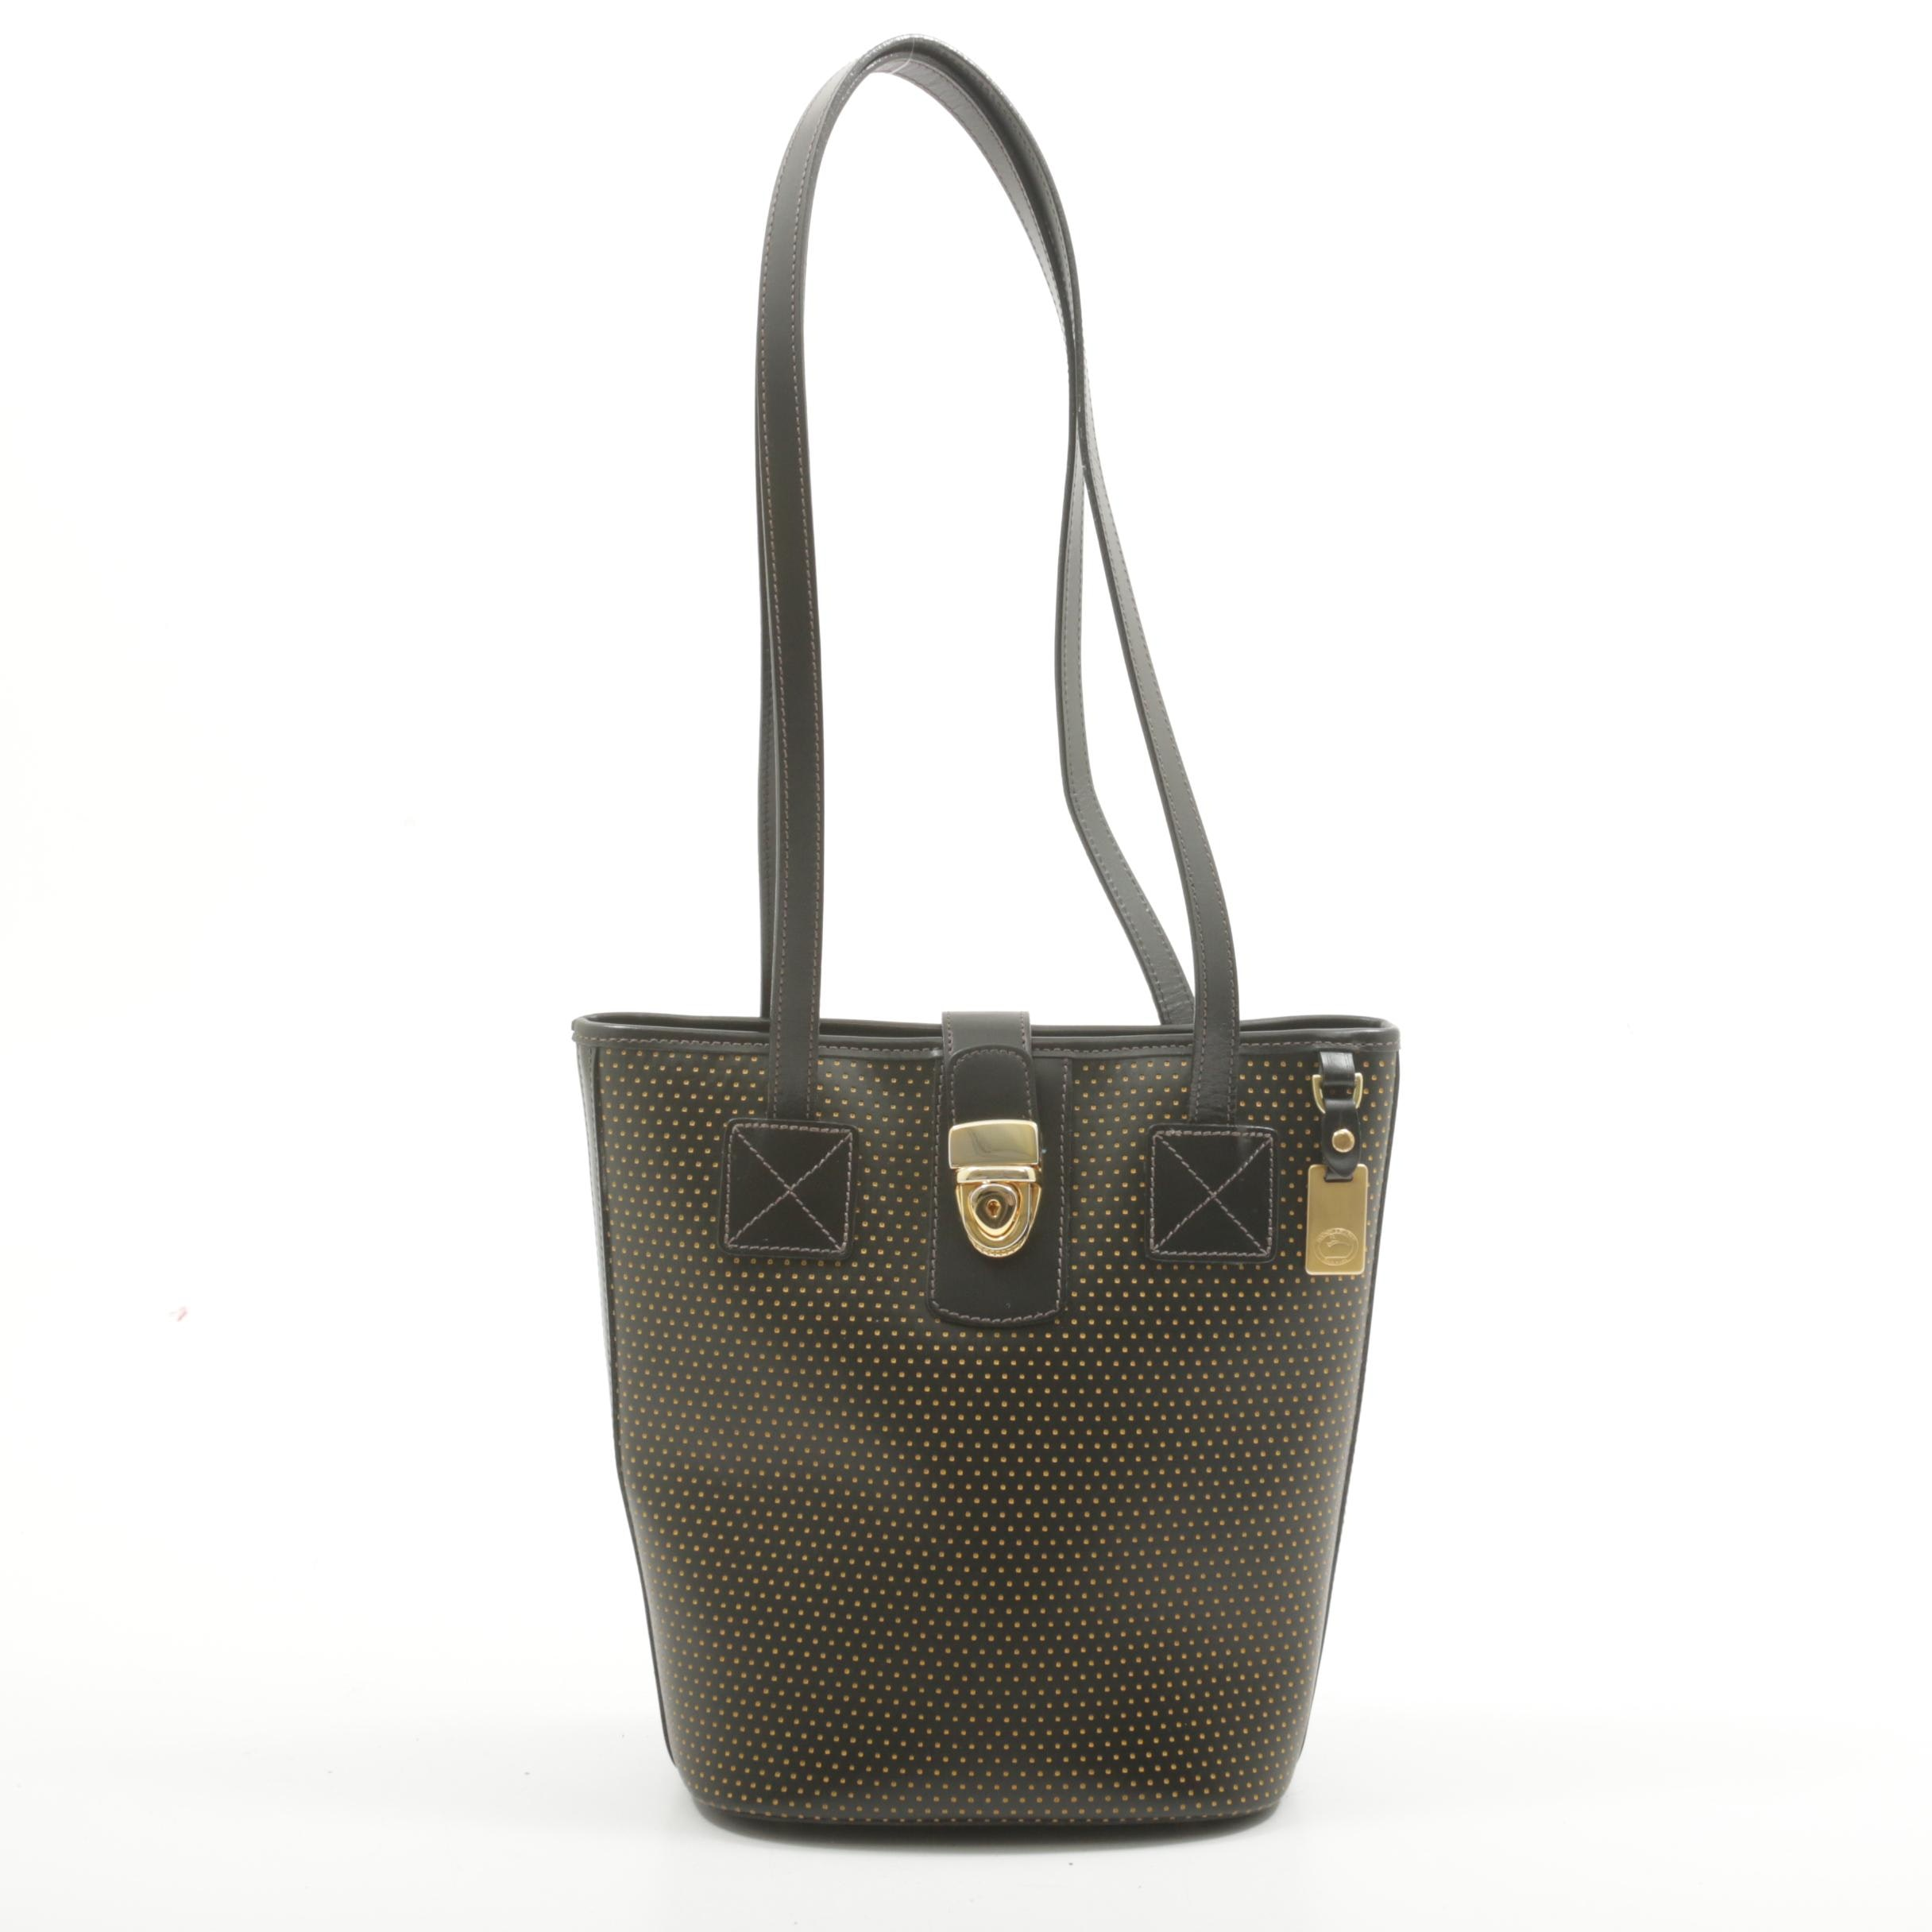 Dooney & Bourke Black Perforated Leather Handbag Accented in Yellow